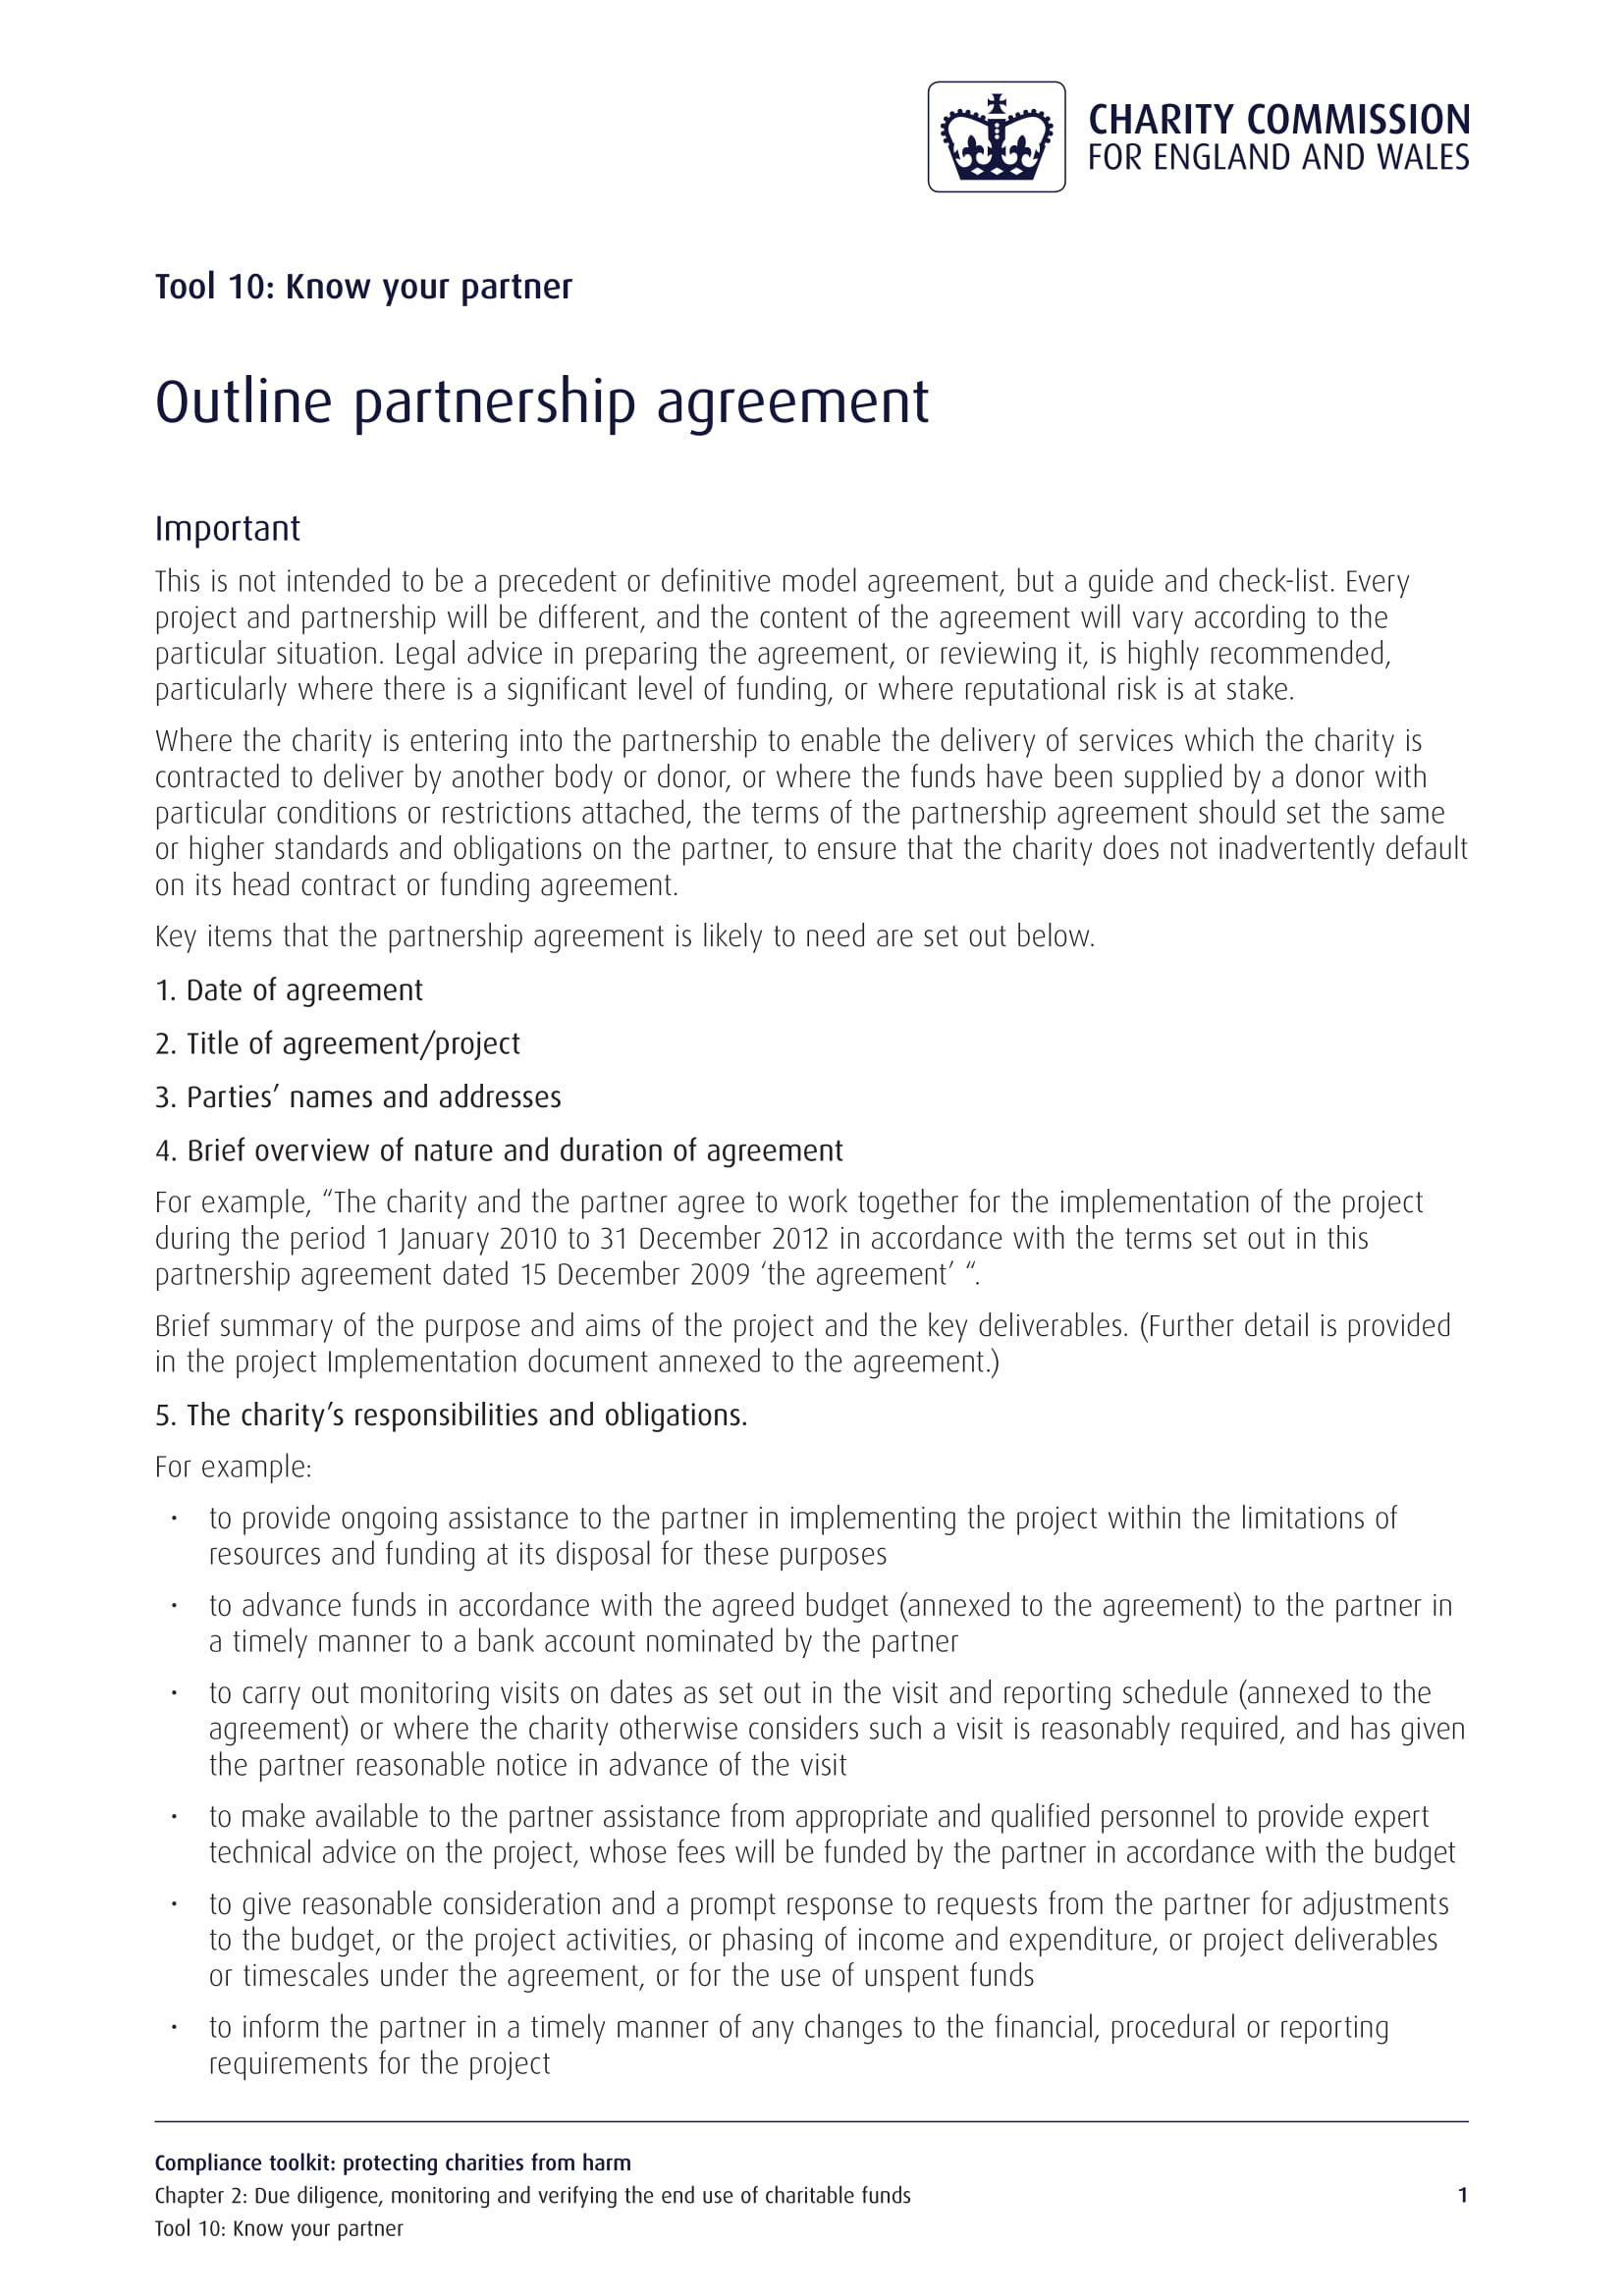 partnership agreement outline example2